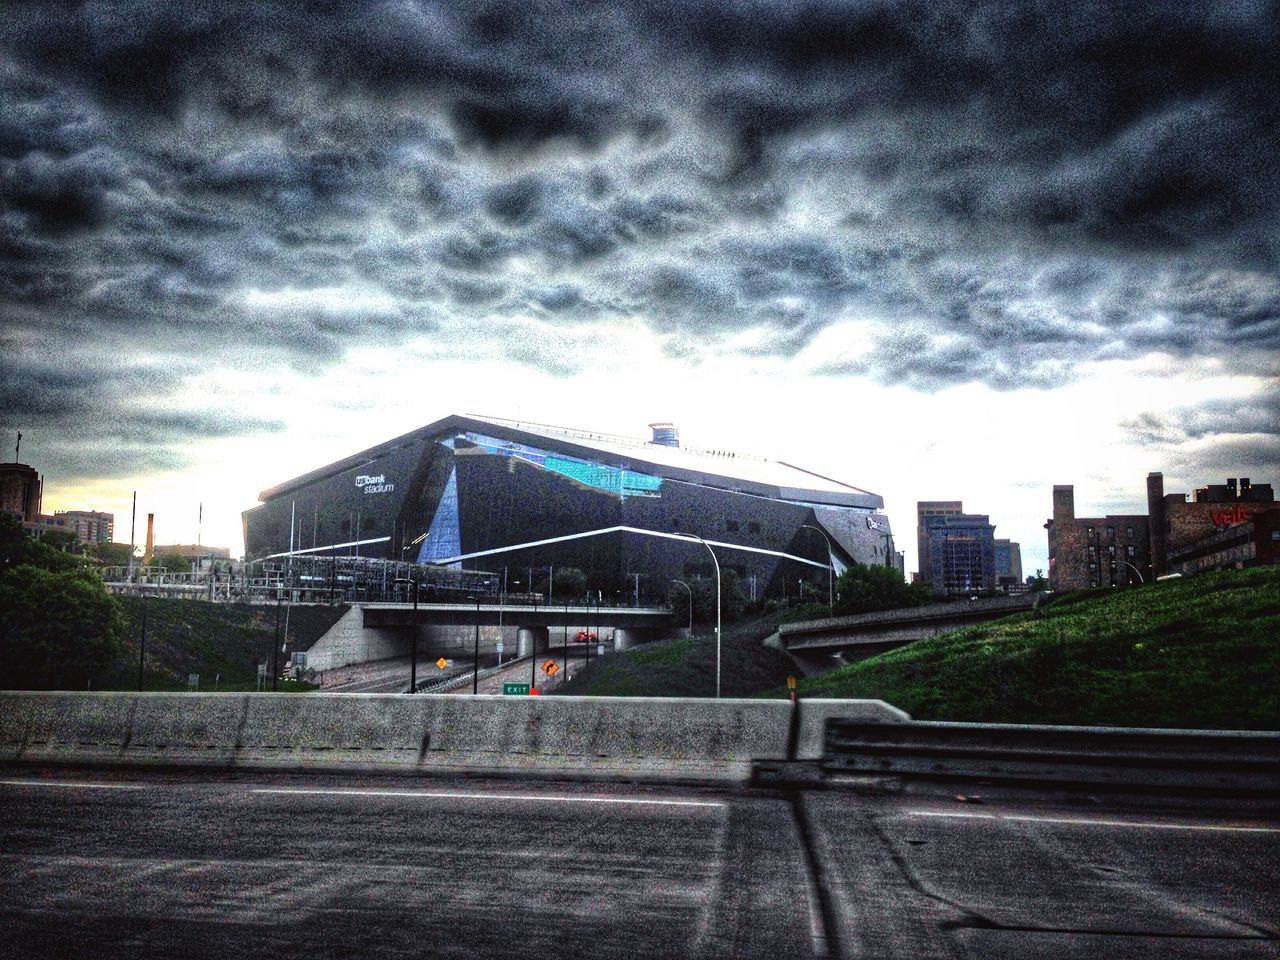 U.S.Bank Stadium DowntownMPLS Minneapolis Minnesota Urban Photography Sky And Clouds Urbanphotography Afternoon Blues Urban Geometry Architecture Urban Landscape Cityscapes Urbanscape Urban Lifestyle